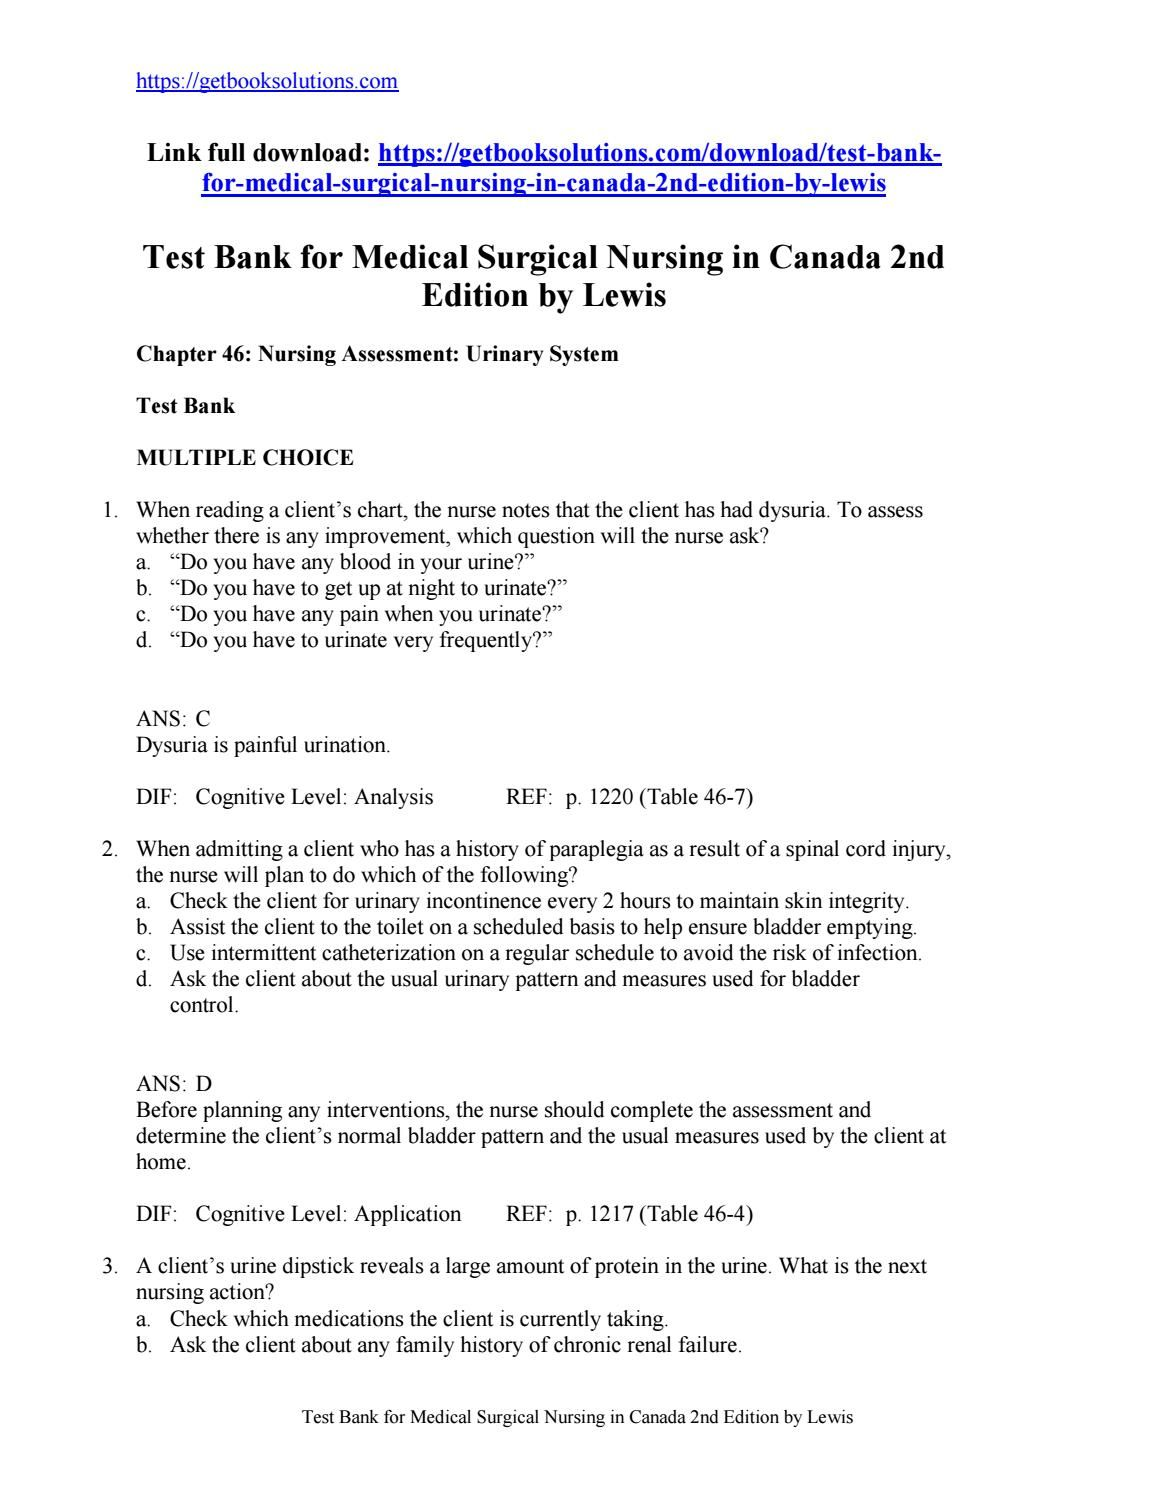 Test Bank For Medical Surgical Nursing In Canada Nd Edition By